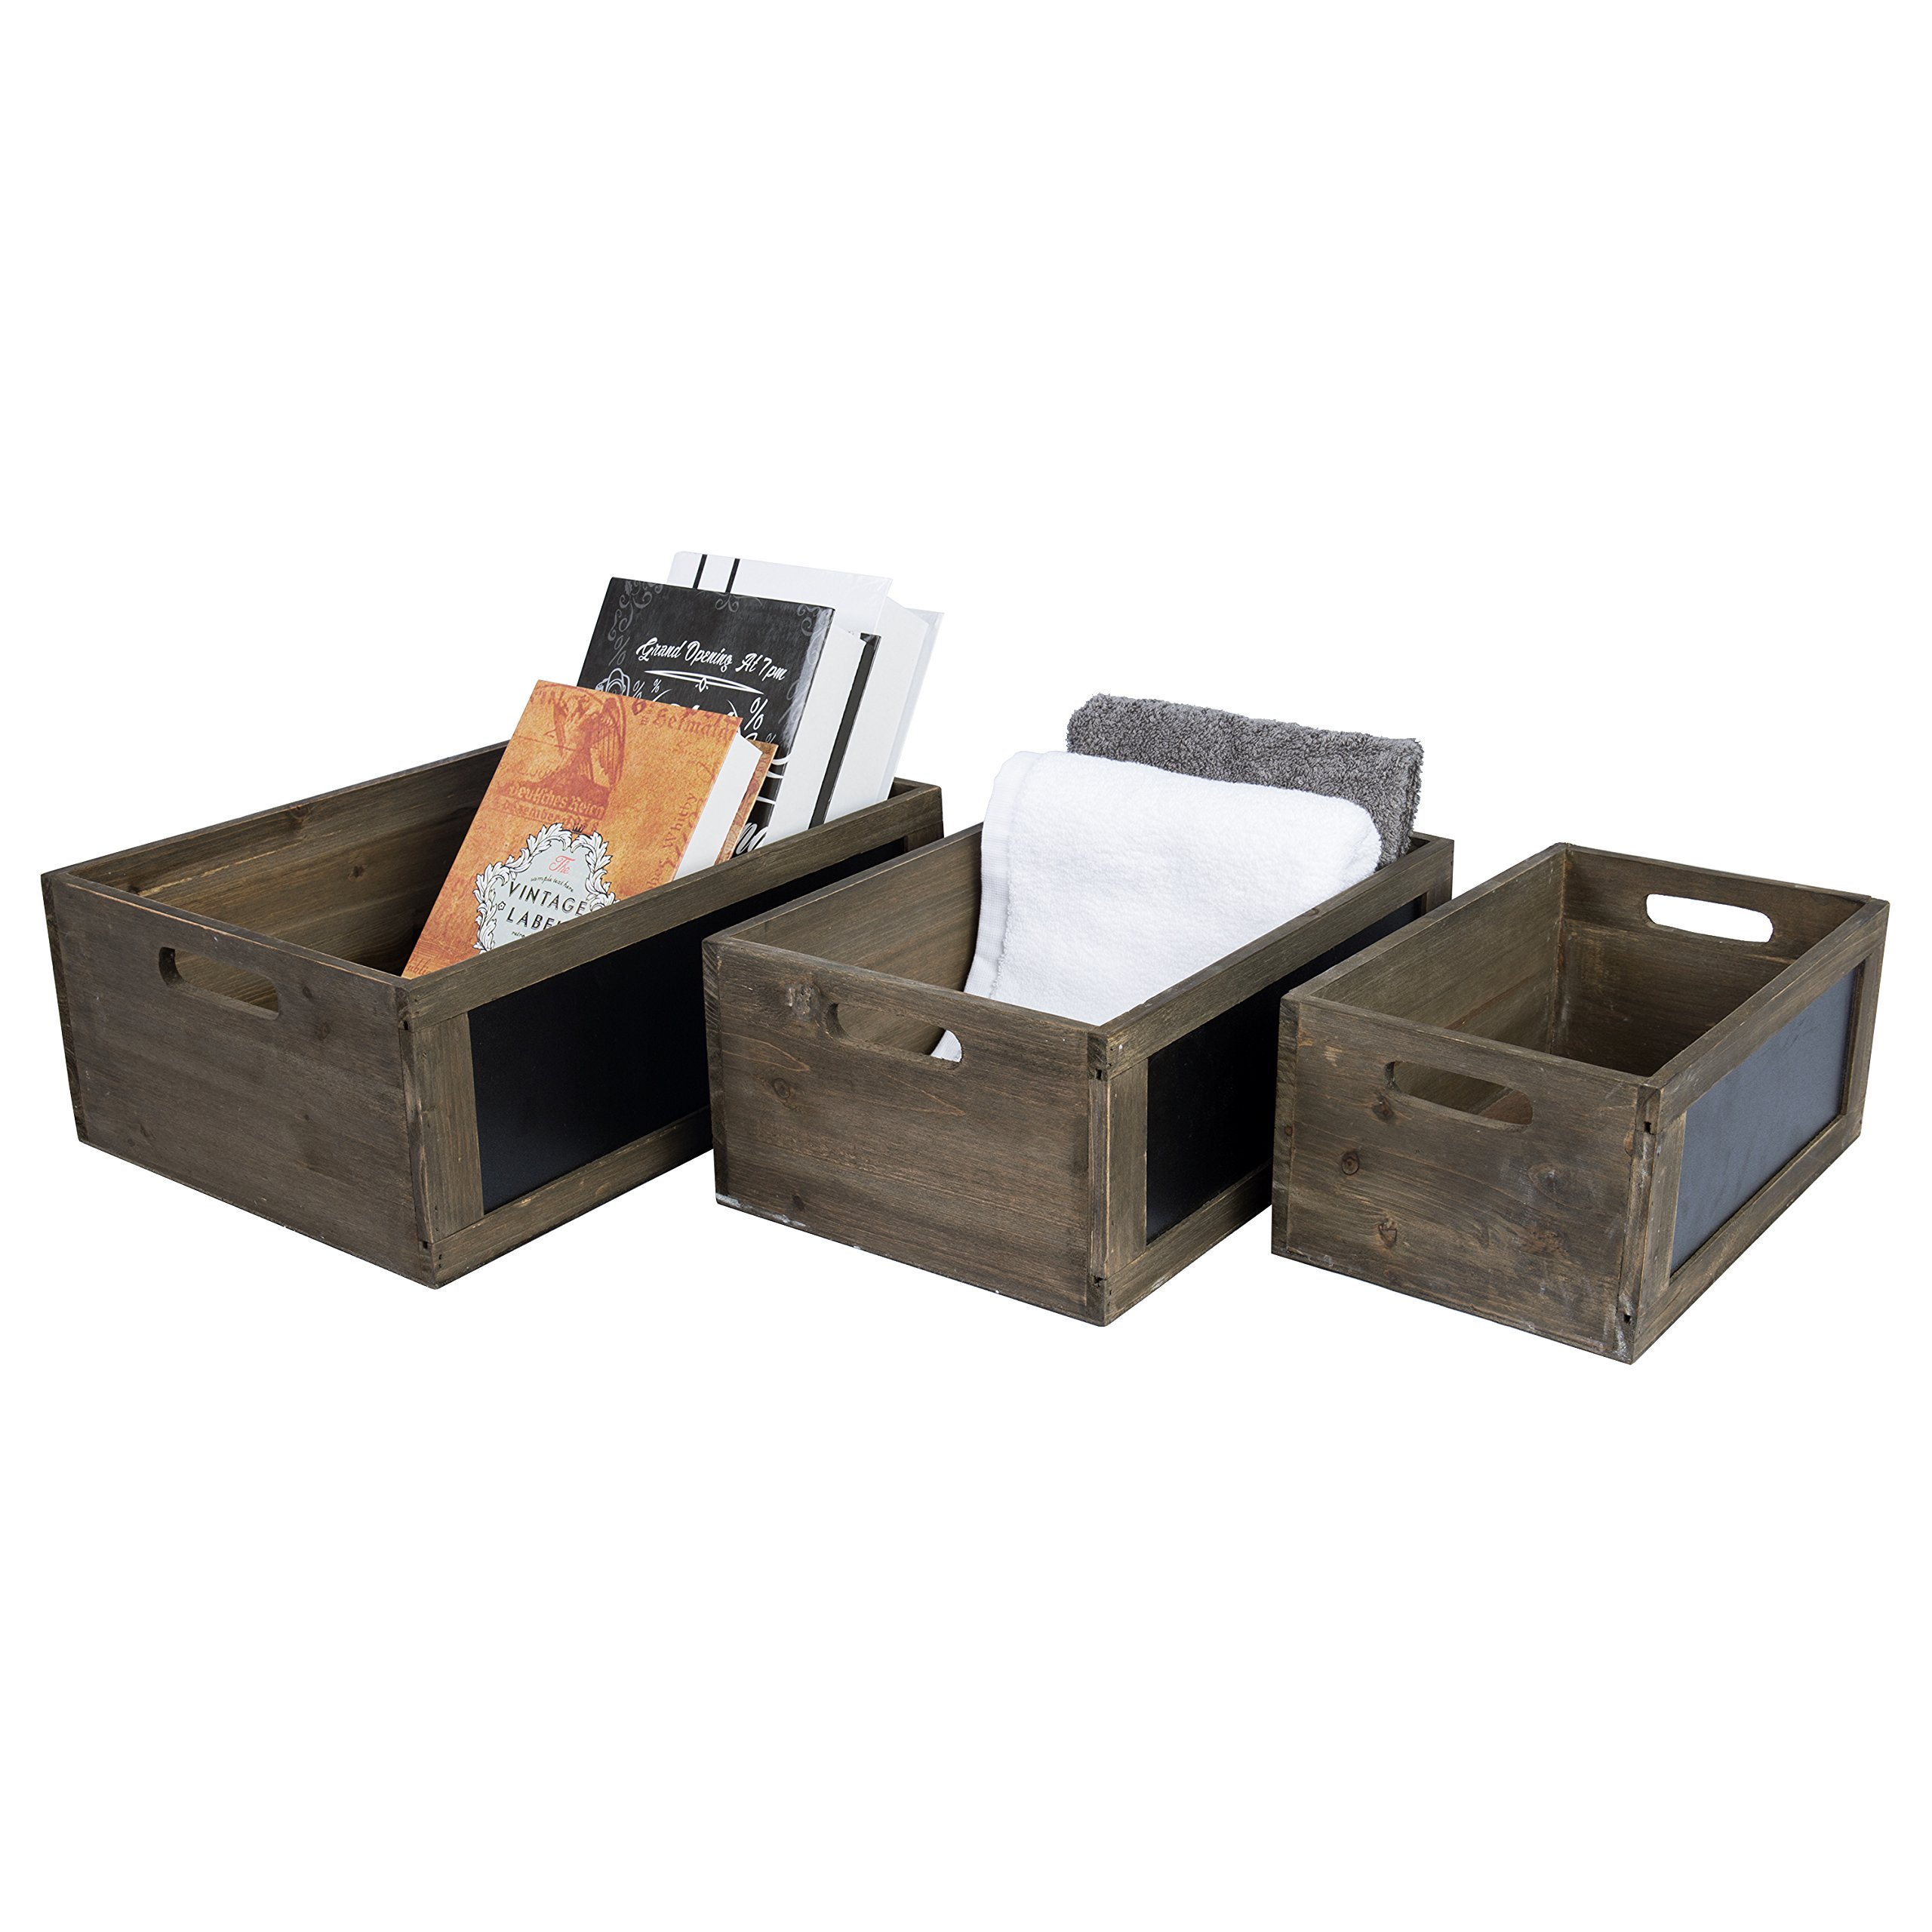 MyGift Rustic Brown Wood Nesting Storage Crates with Chalkboard Front Panel and Cutout Handles, Set of 3 by MyGift (Image #4)